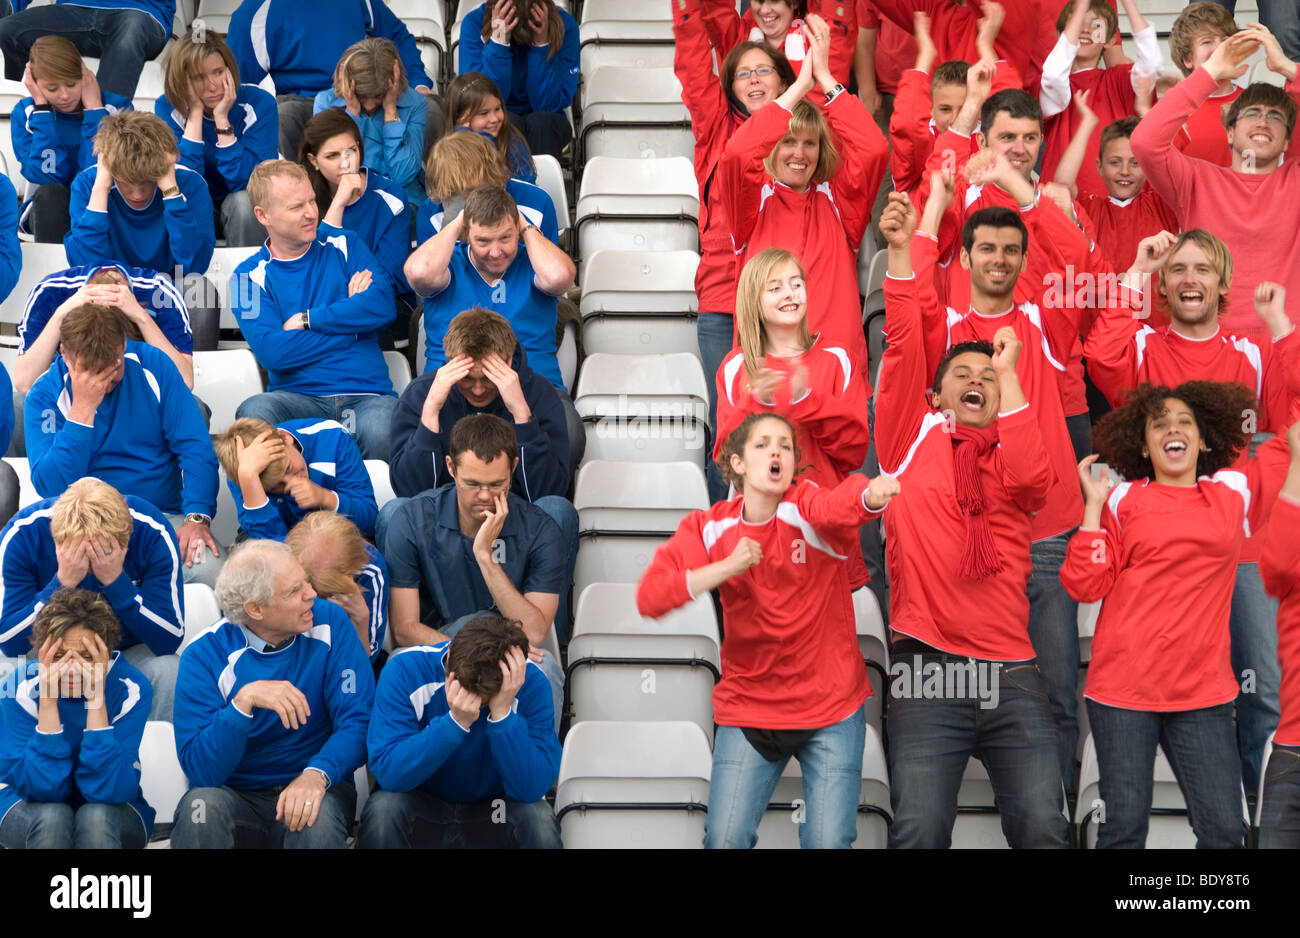 Rival fans at football match Stock Photo